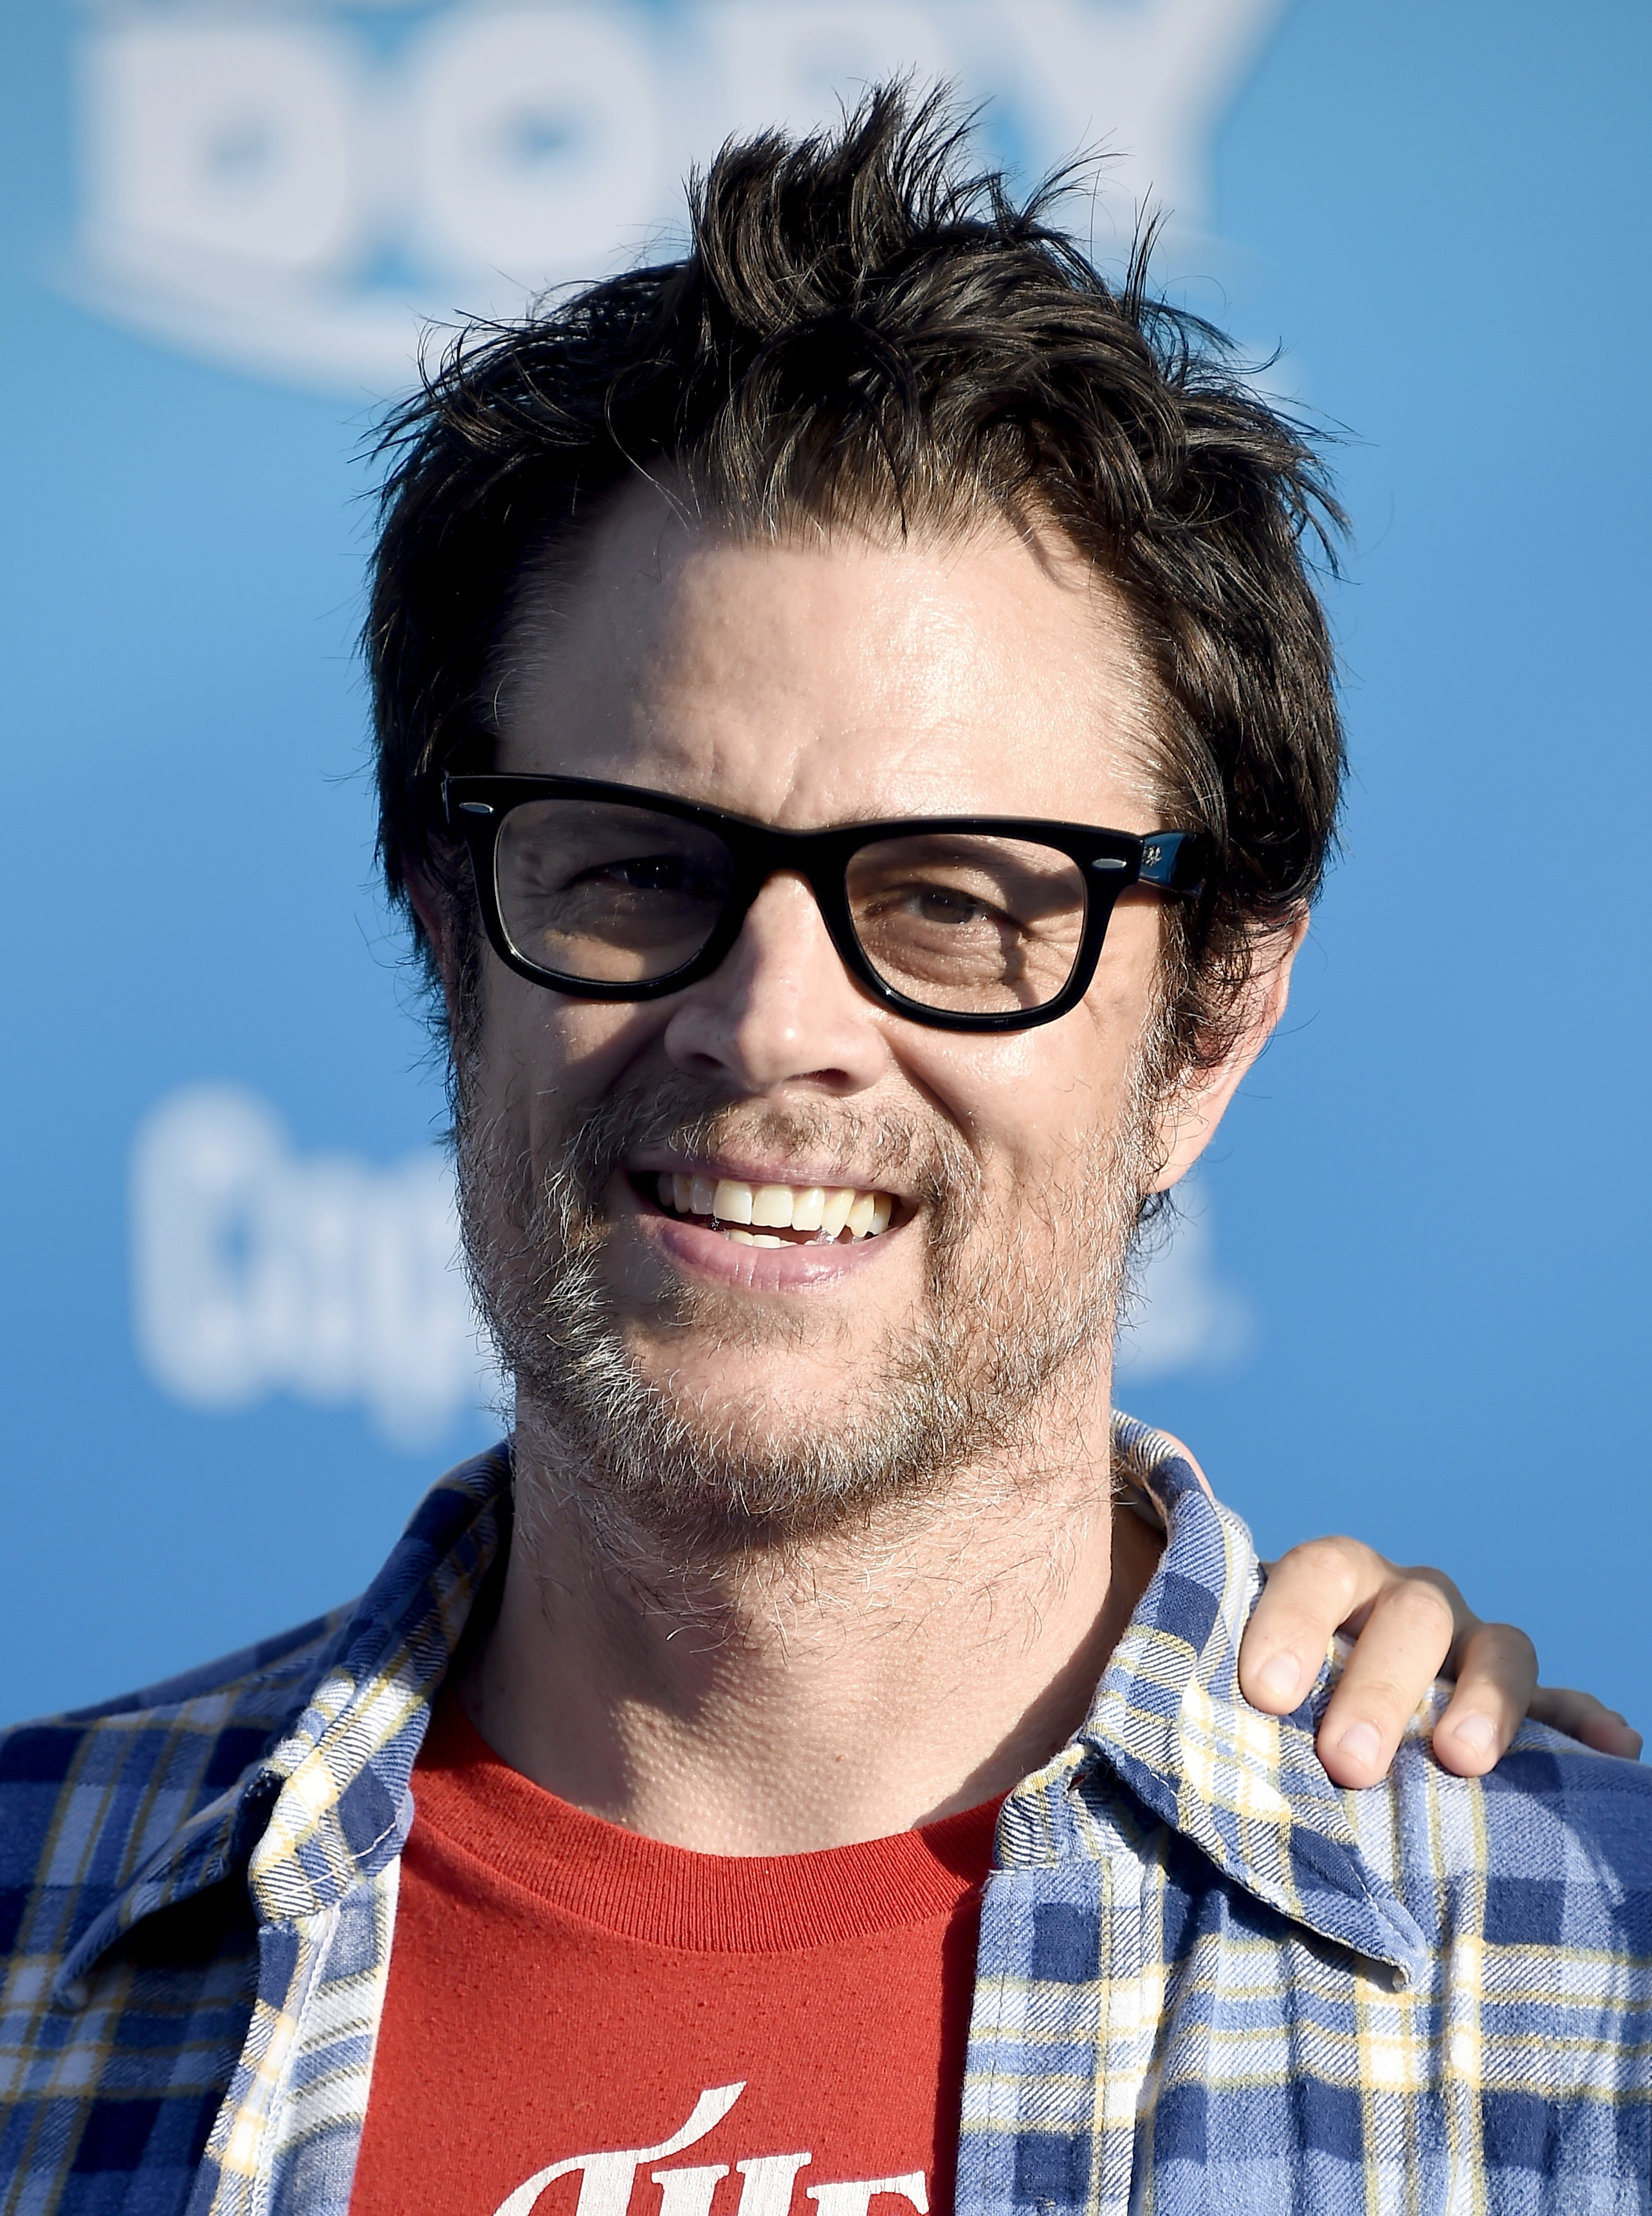 oi johnny knoxville stars - 763×1024